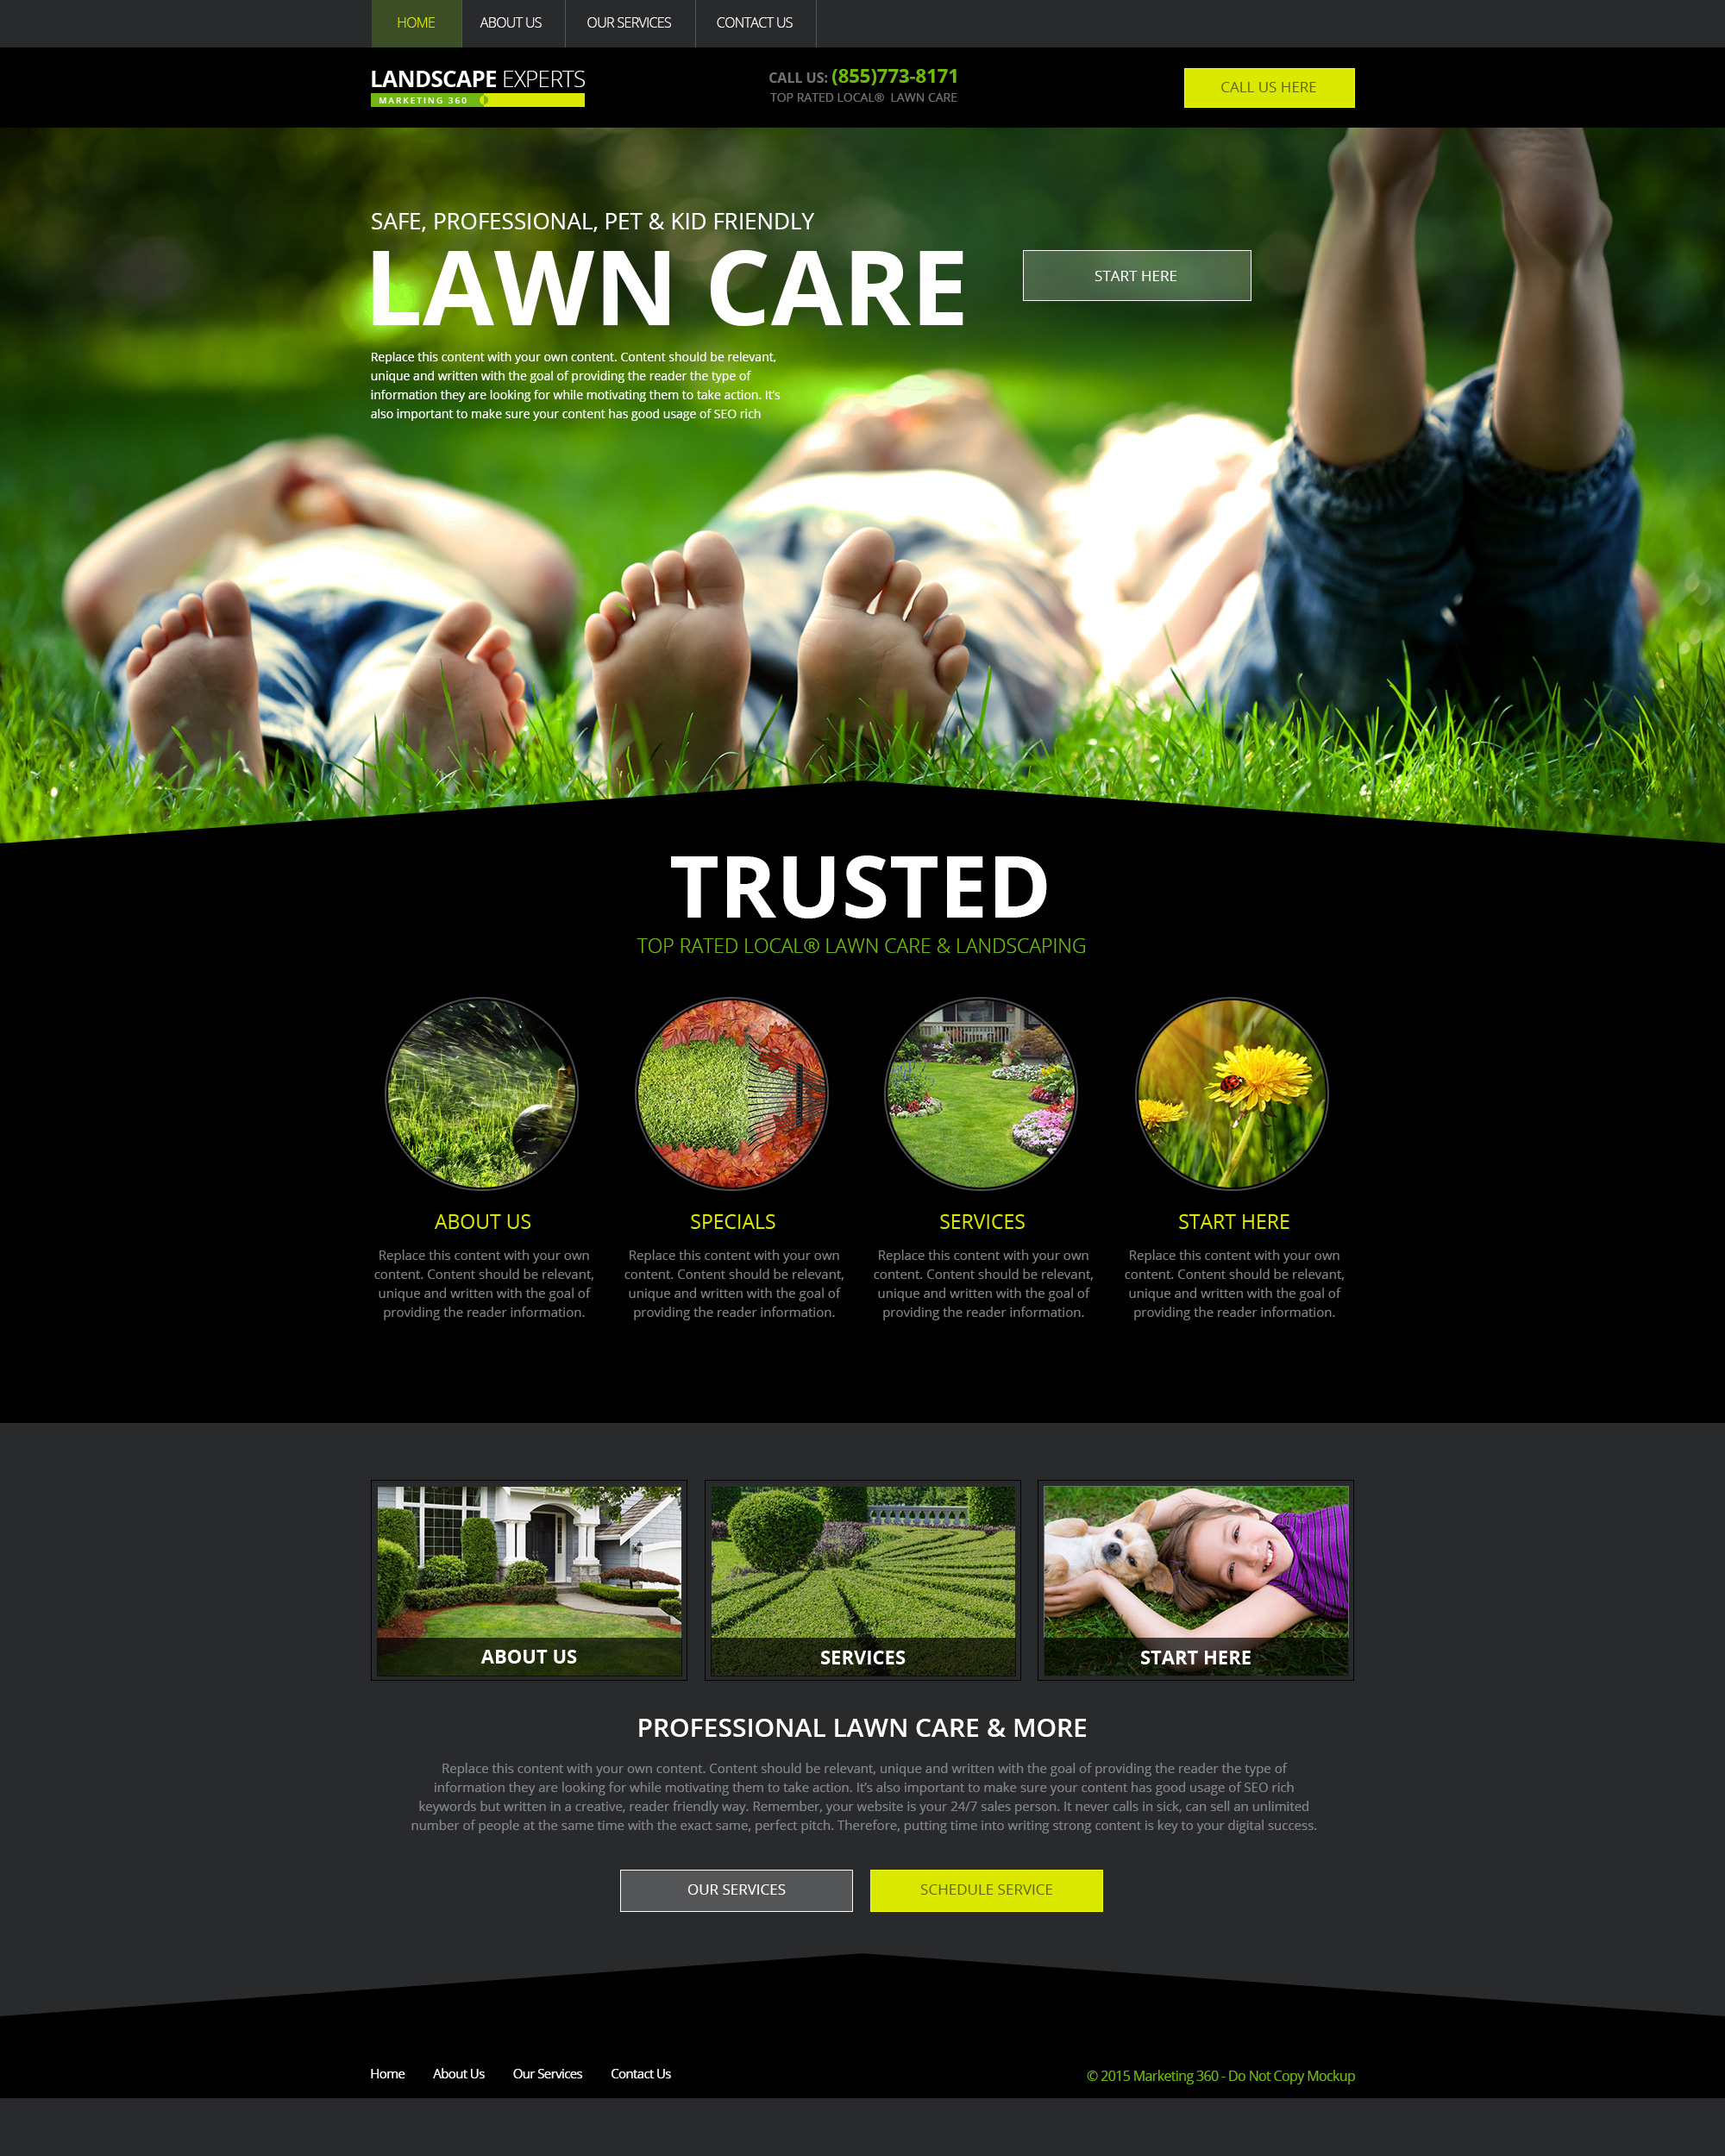 lawn mowing website template - Keni.candlecomfortzone.com